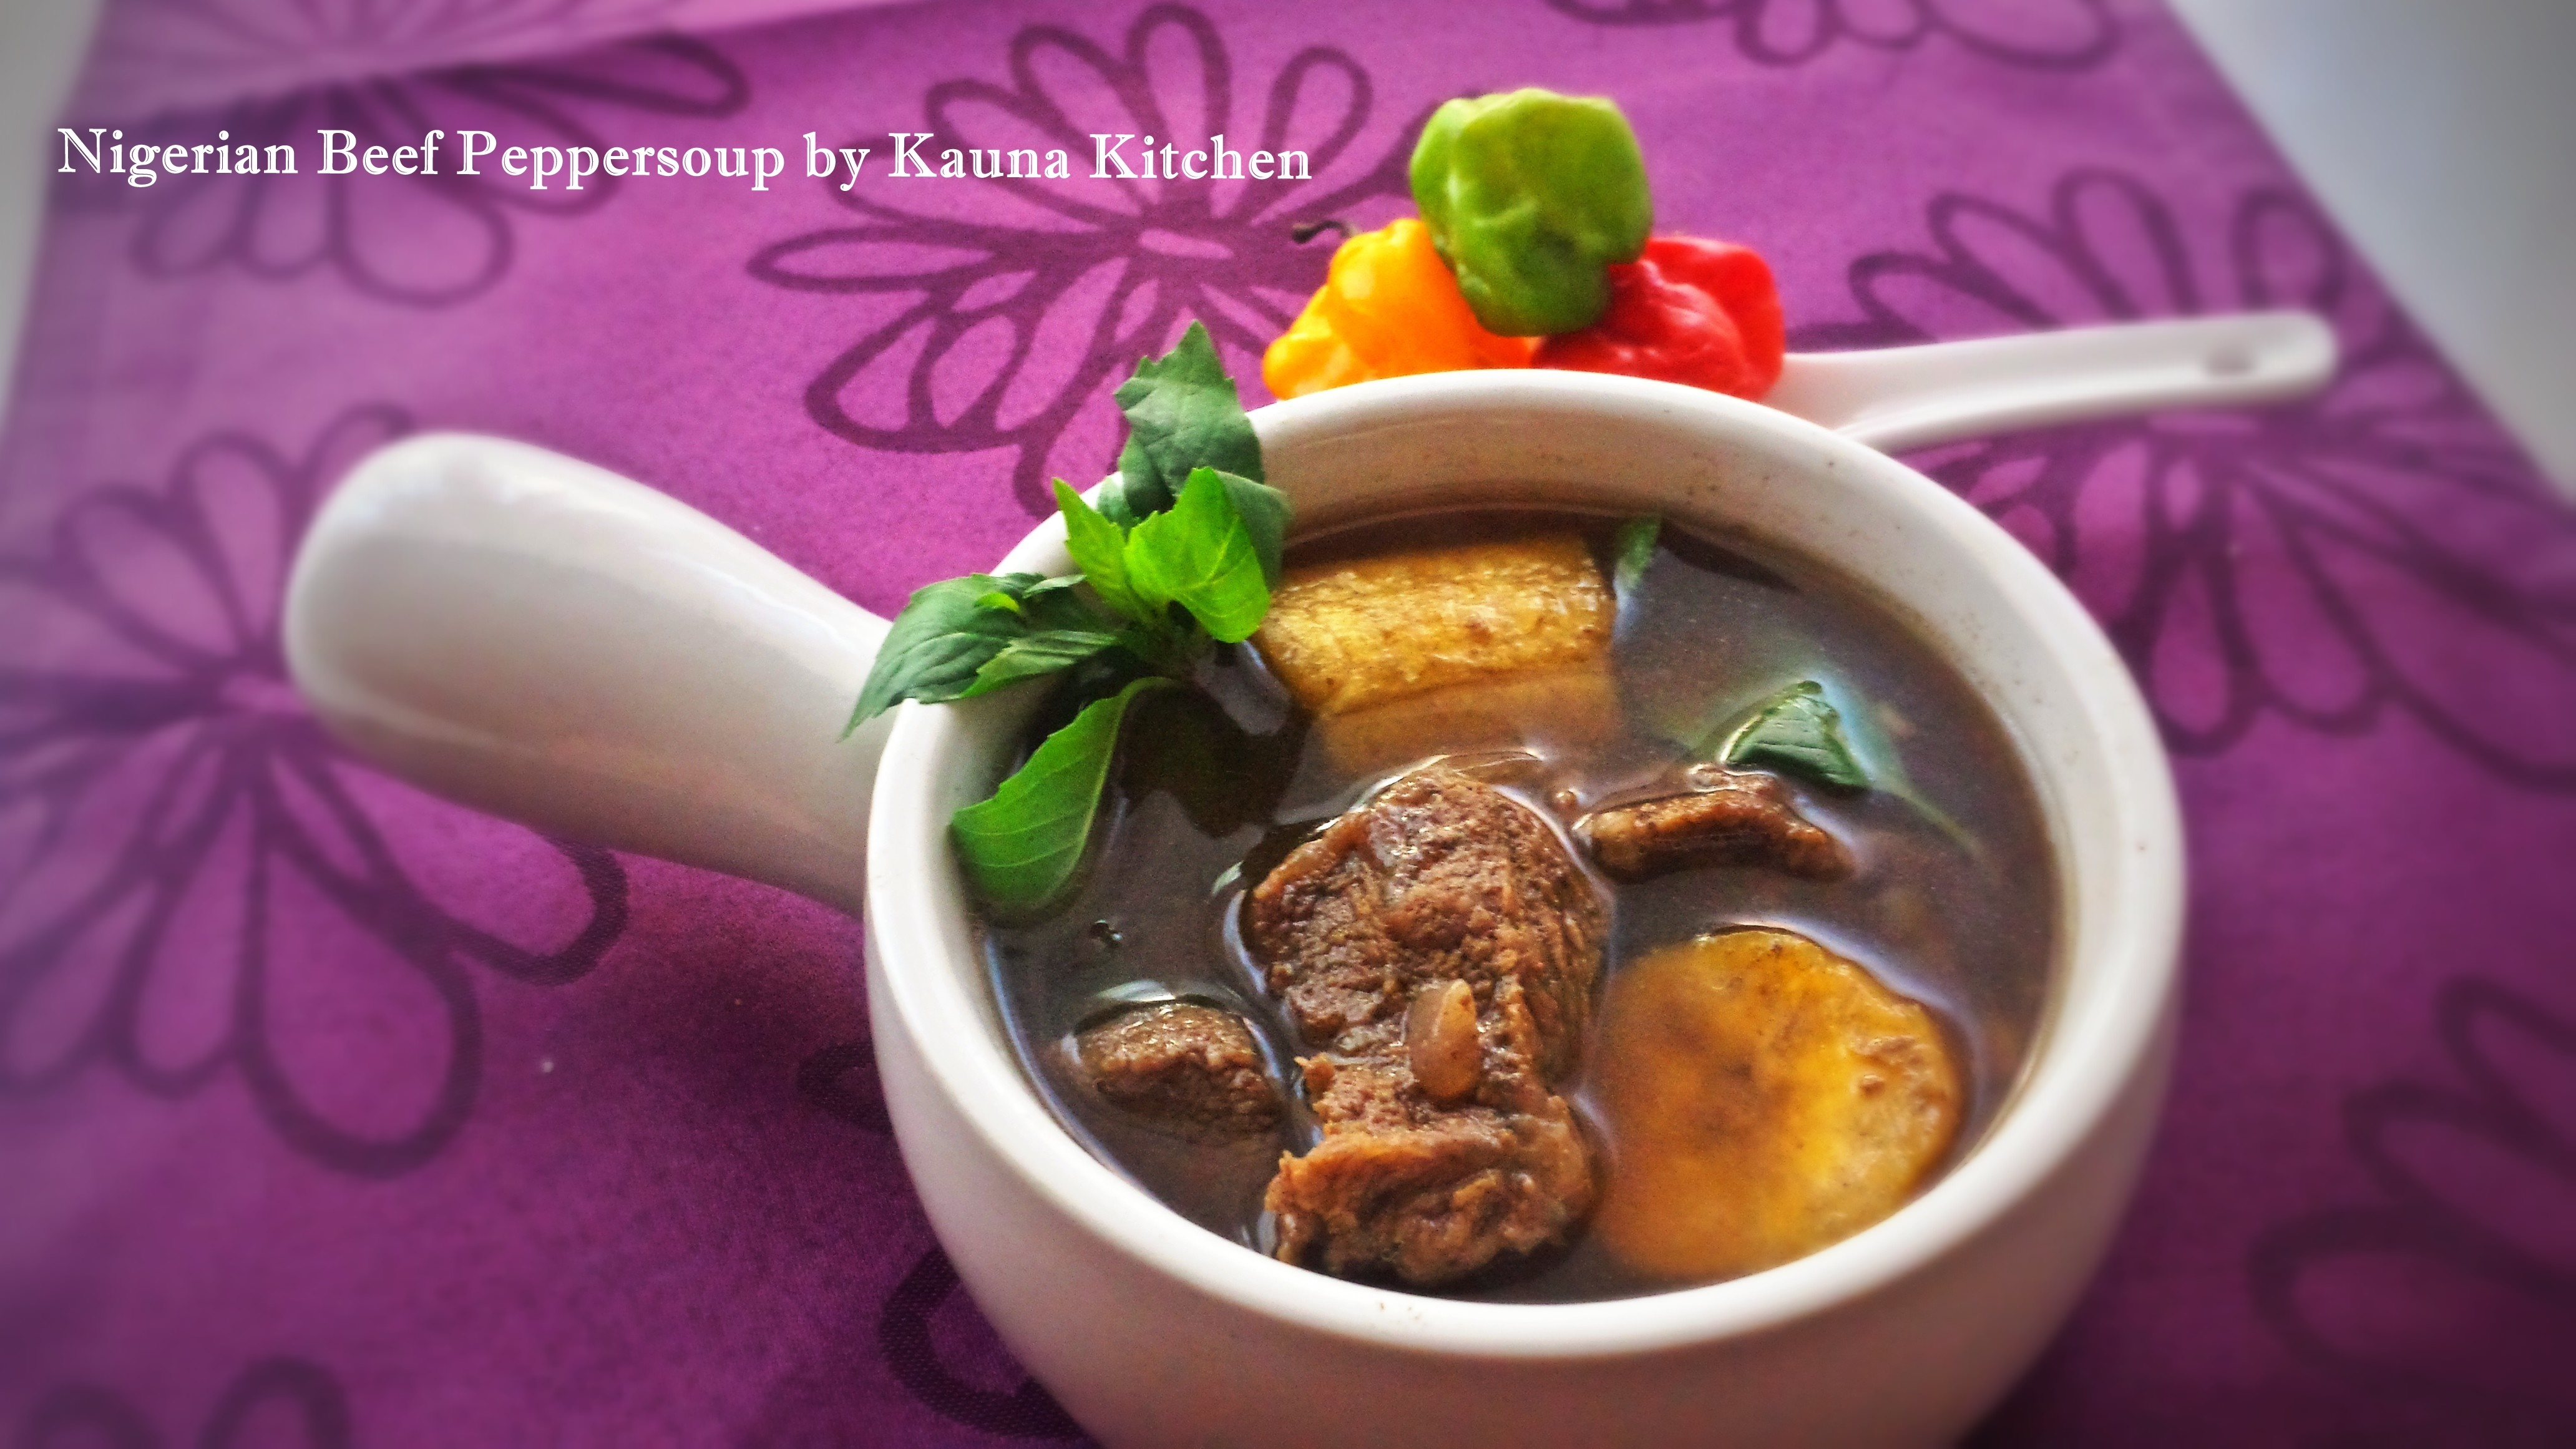 Nigerian Beef Peppersoup With Boiled Plantains